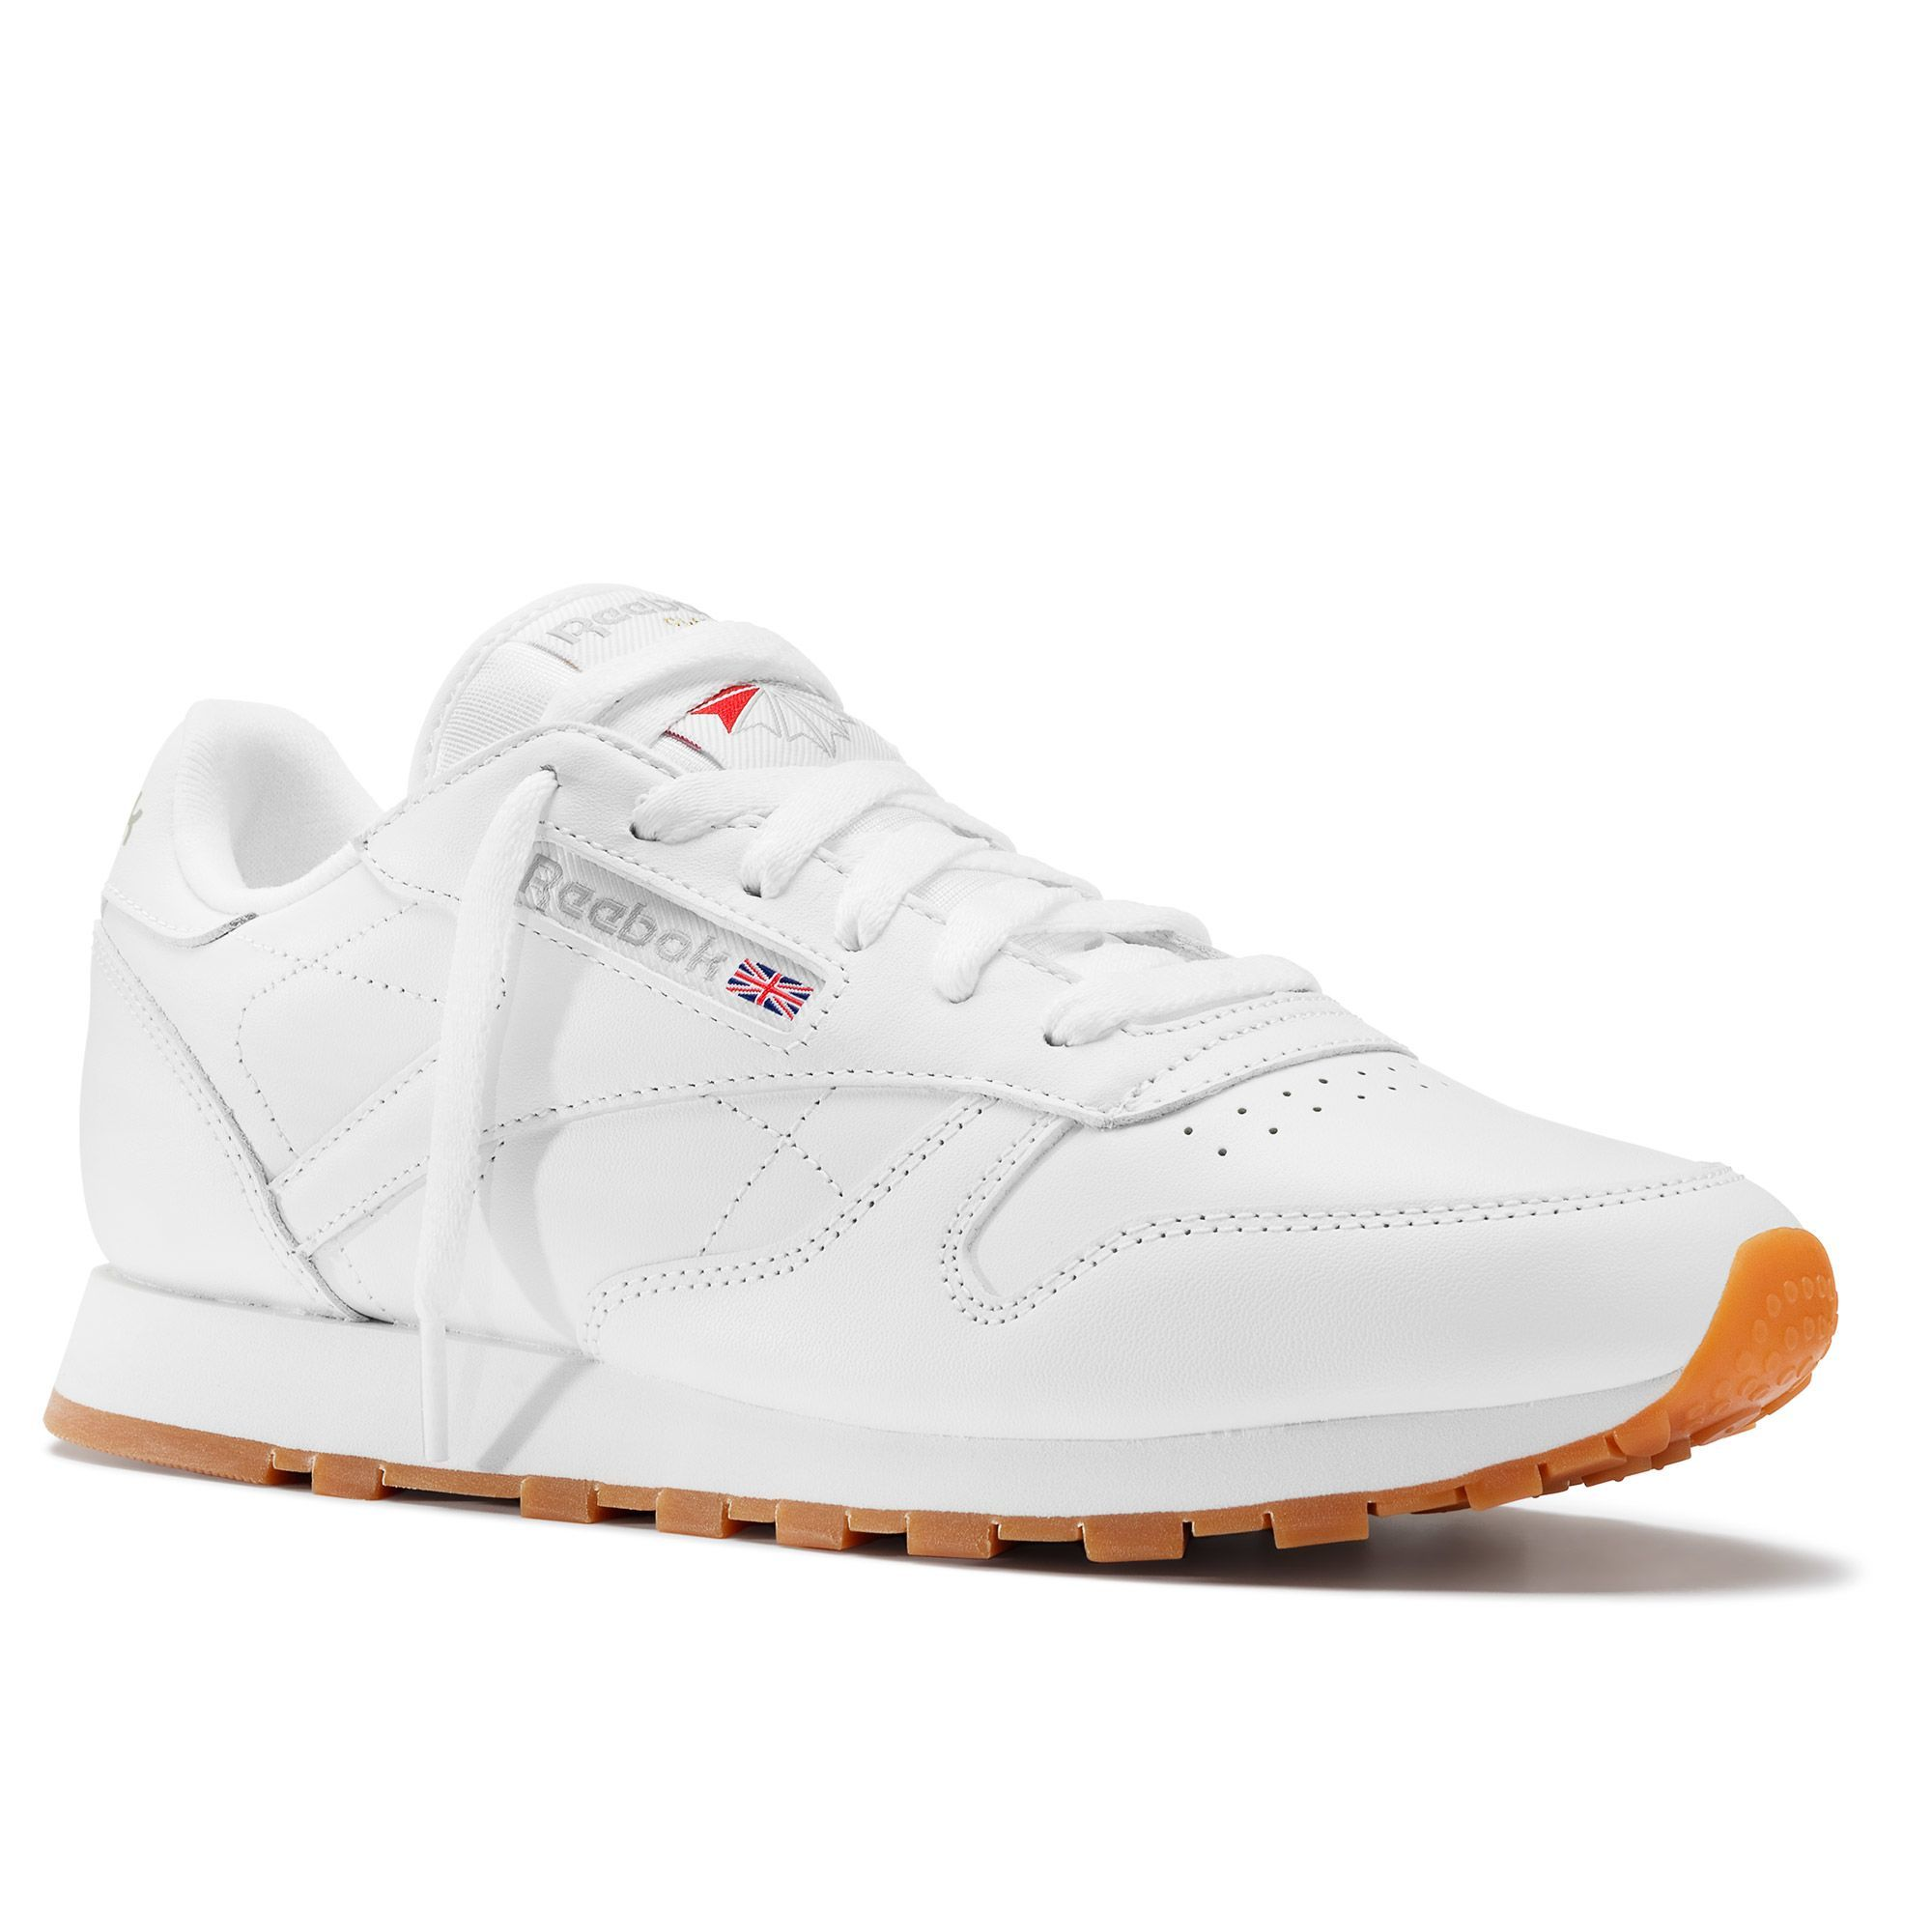 Details about Reebok CL LTHR Classic Leather White Gum Women Casual Shoes Sneakers 49803